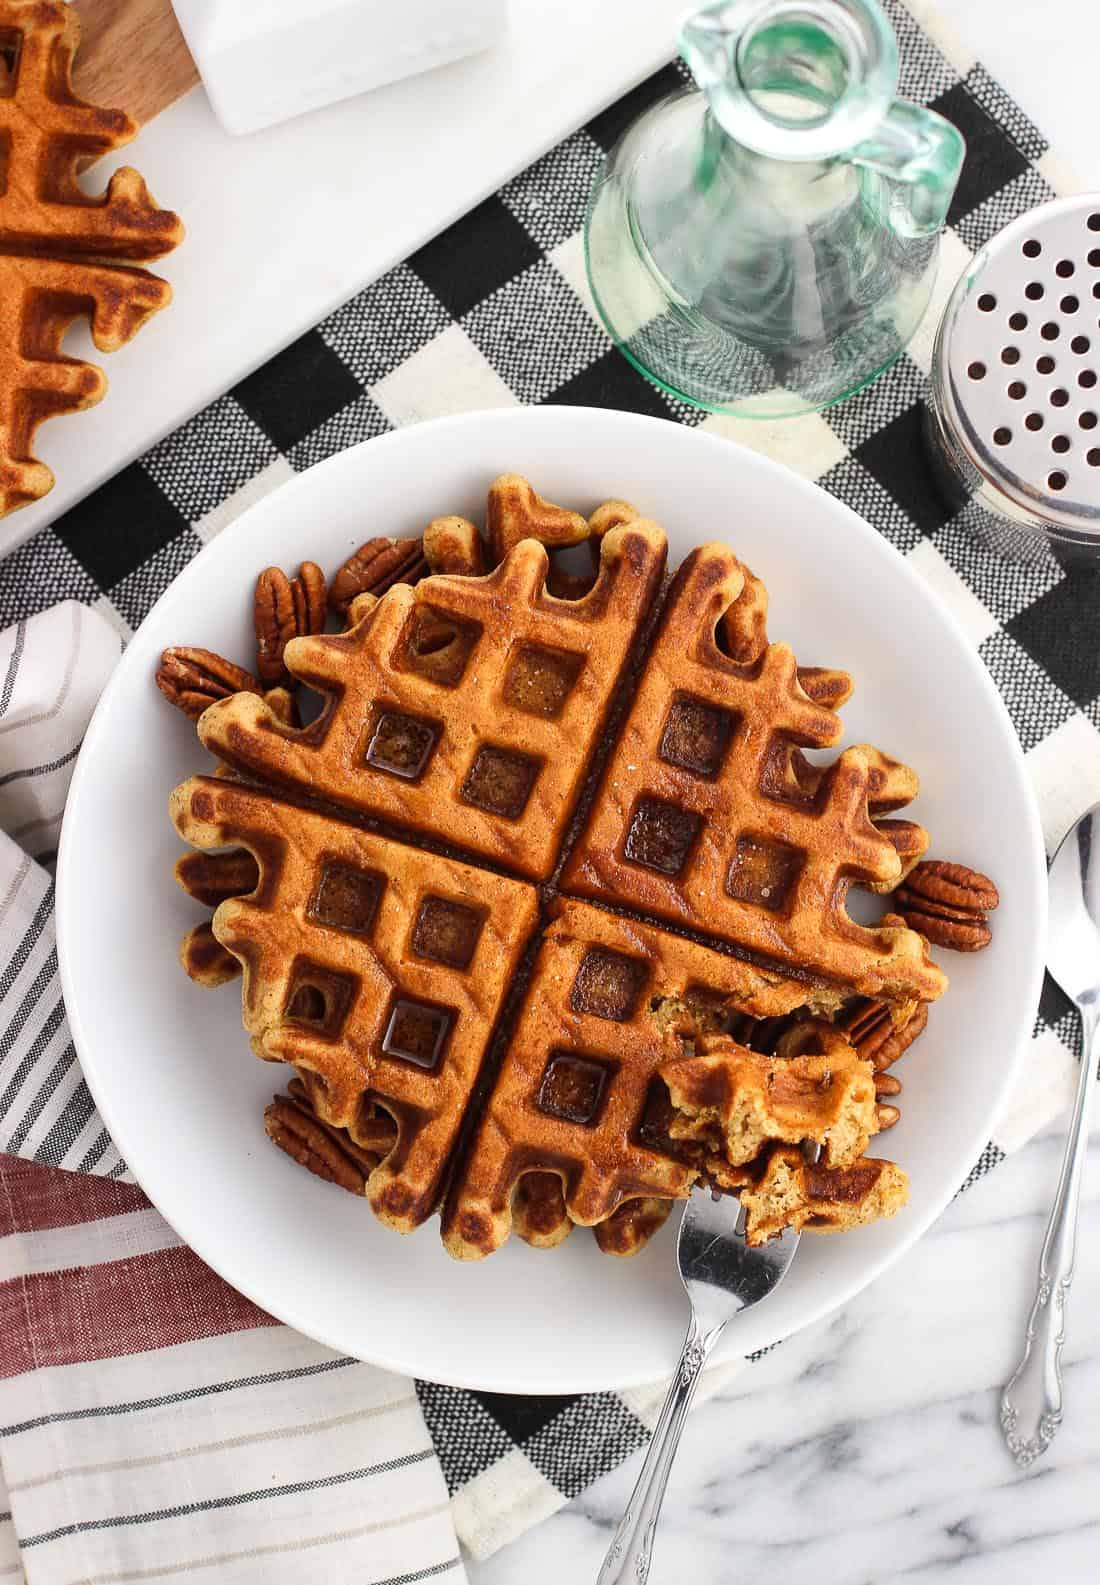 An overhead shot of two gingerbread waffles served on a plate with maple syrup and pecans